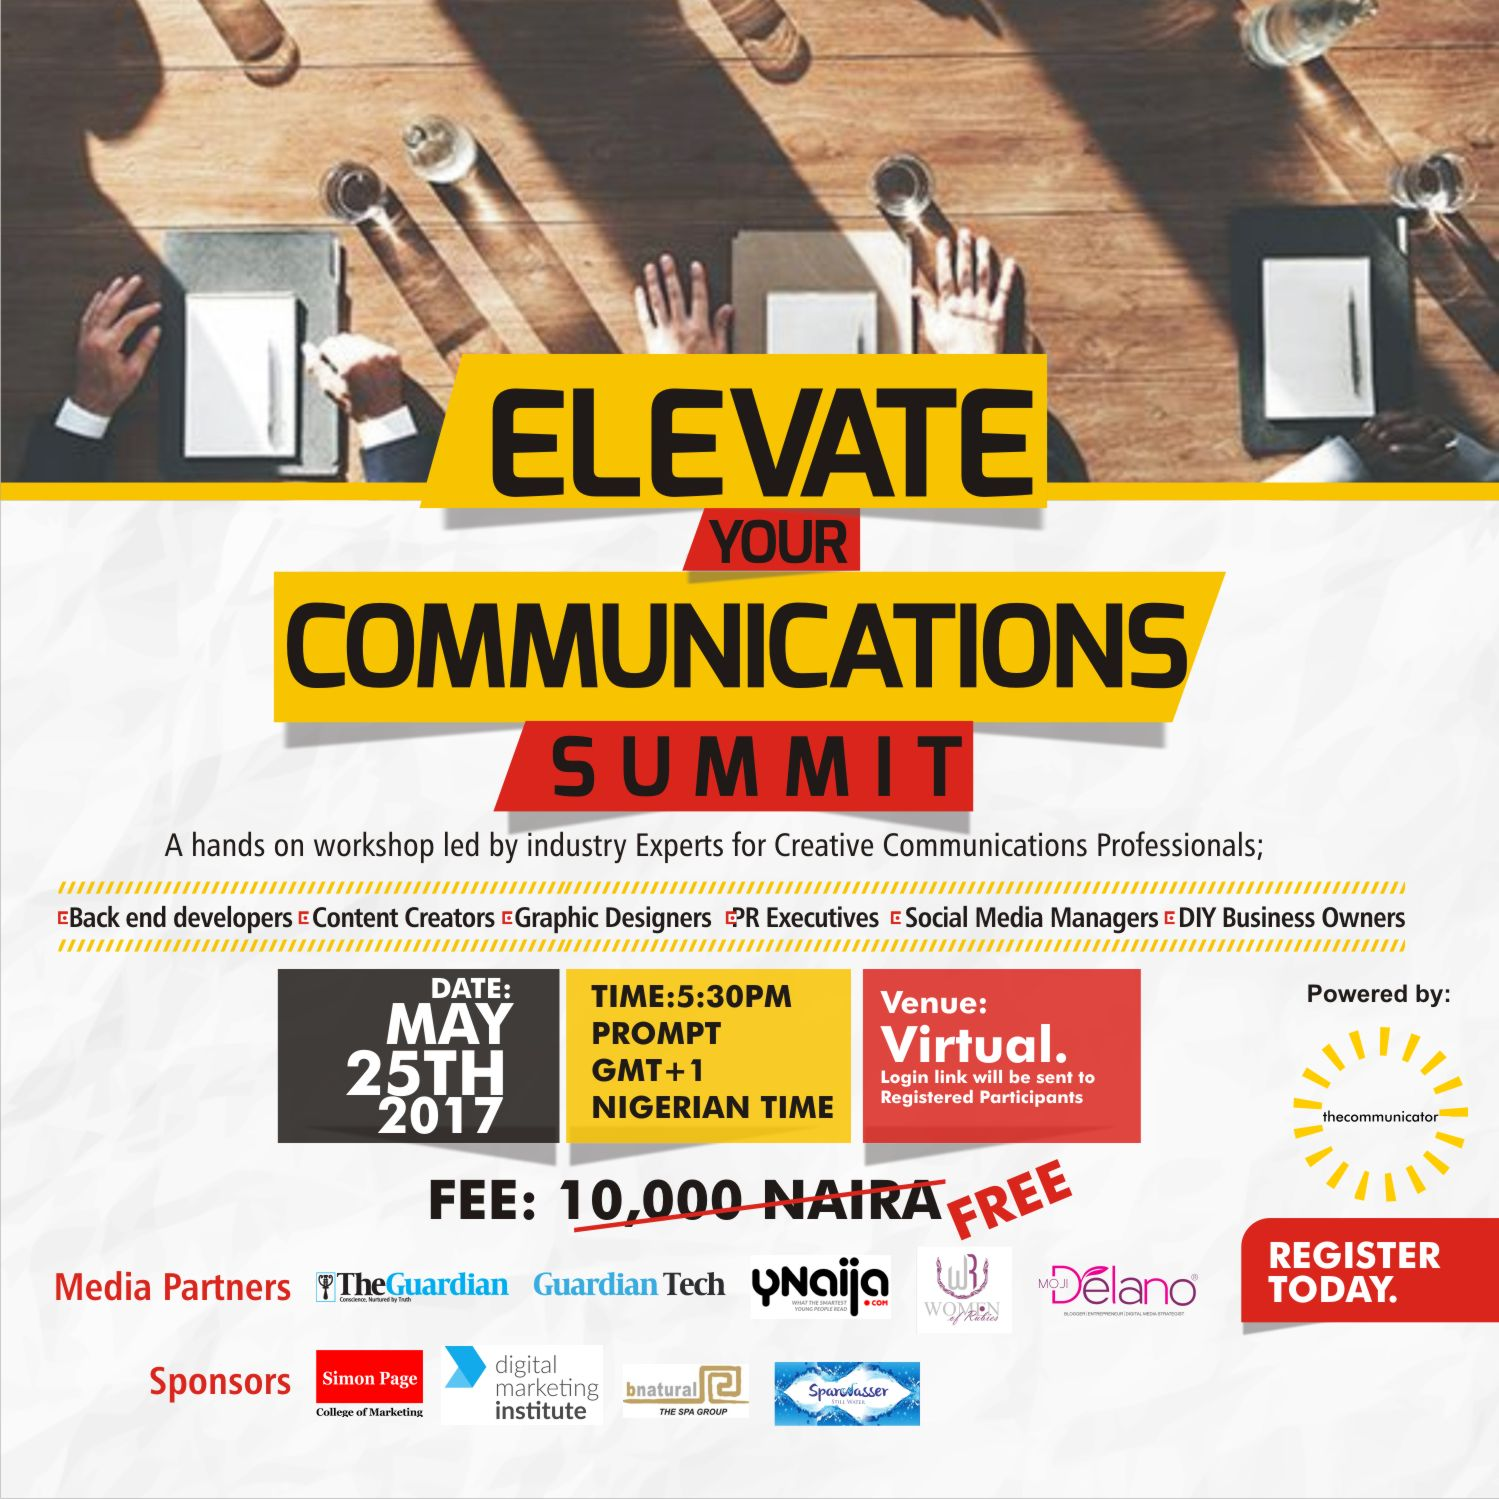 COMMUNICATIONS SUMMIT SET TO TRAIN YOUNG CREATIVE PROFESSIONALS